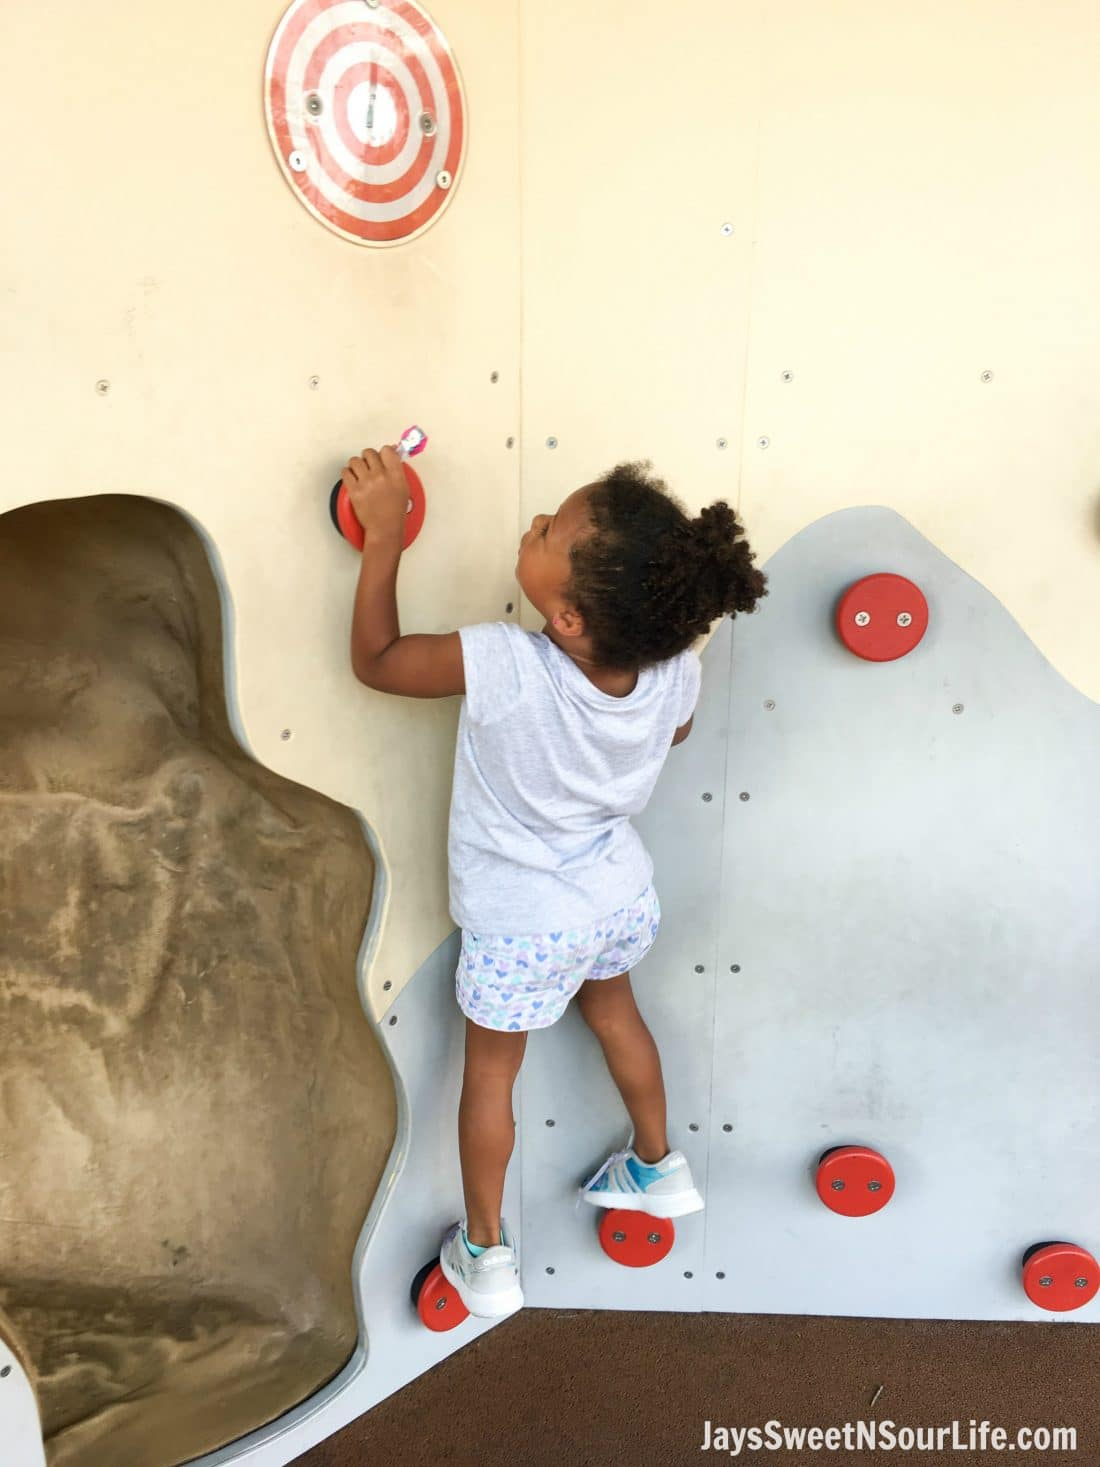 African American girl scaling the walls at Legoland Florida Ninjago World Coles Rock Climb. Spend your summer building memories at Legoland in Florida. There is something for the whole family to enjoy at this wonderful Theme Park.